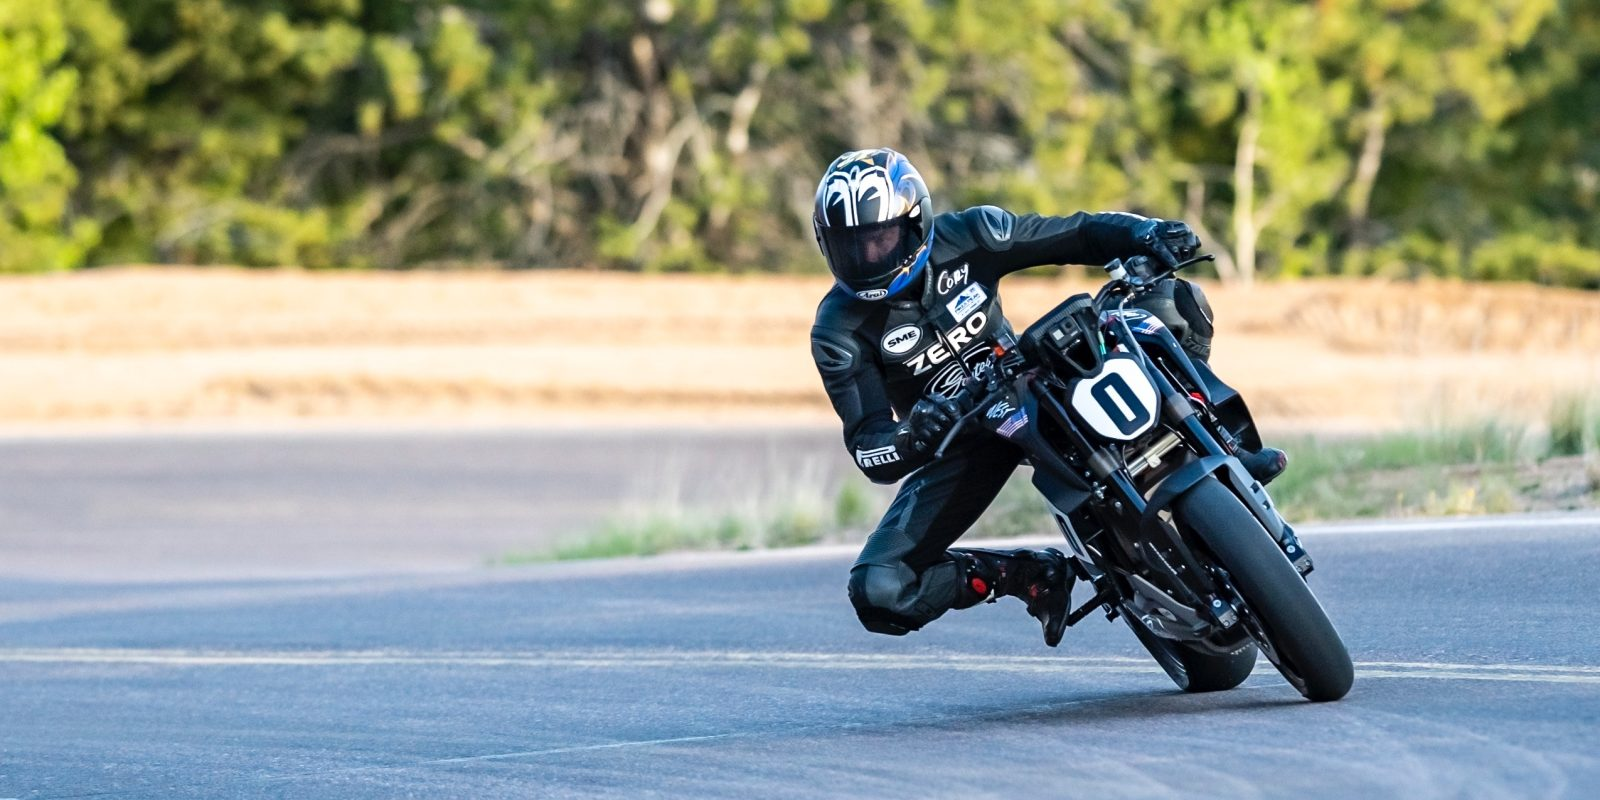 Here's how Zero turned the SR/F streetfighter into a racing electric motorcycle